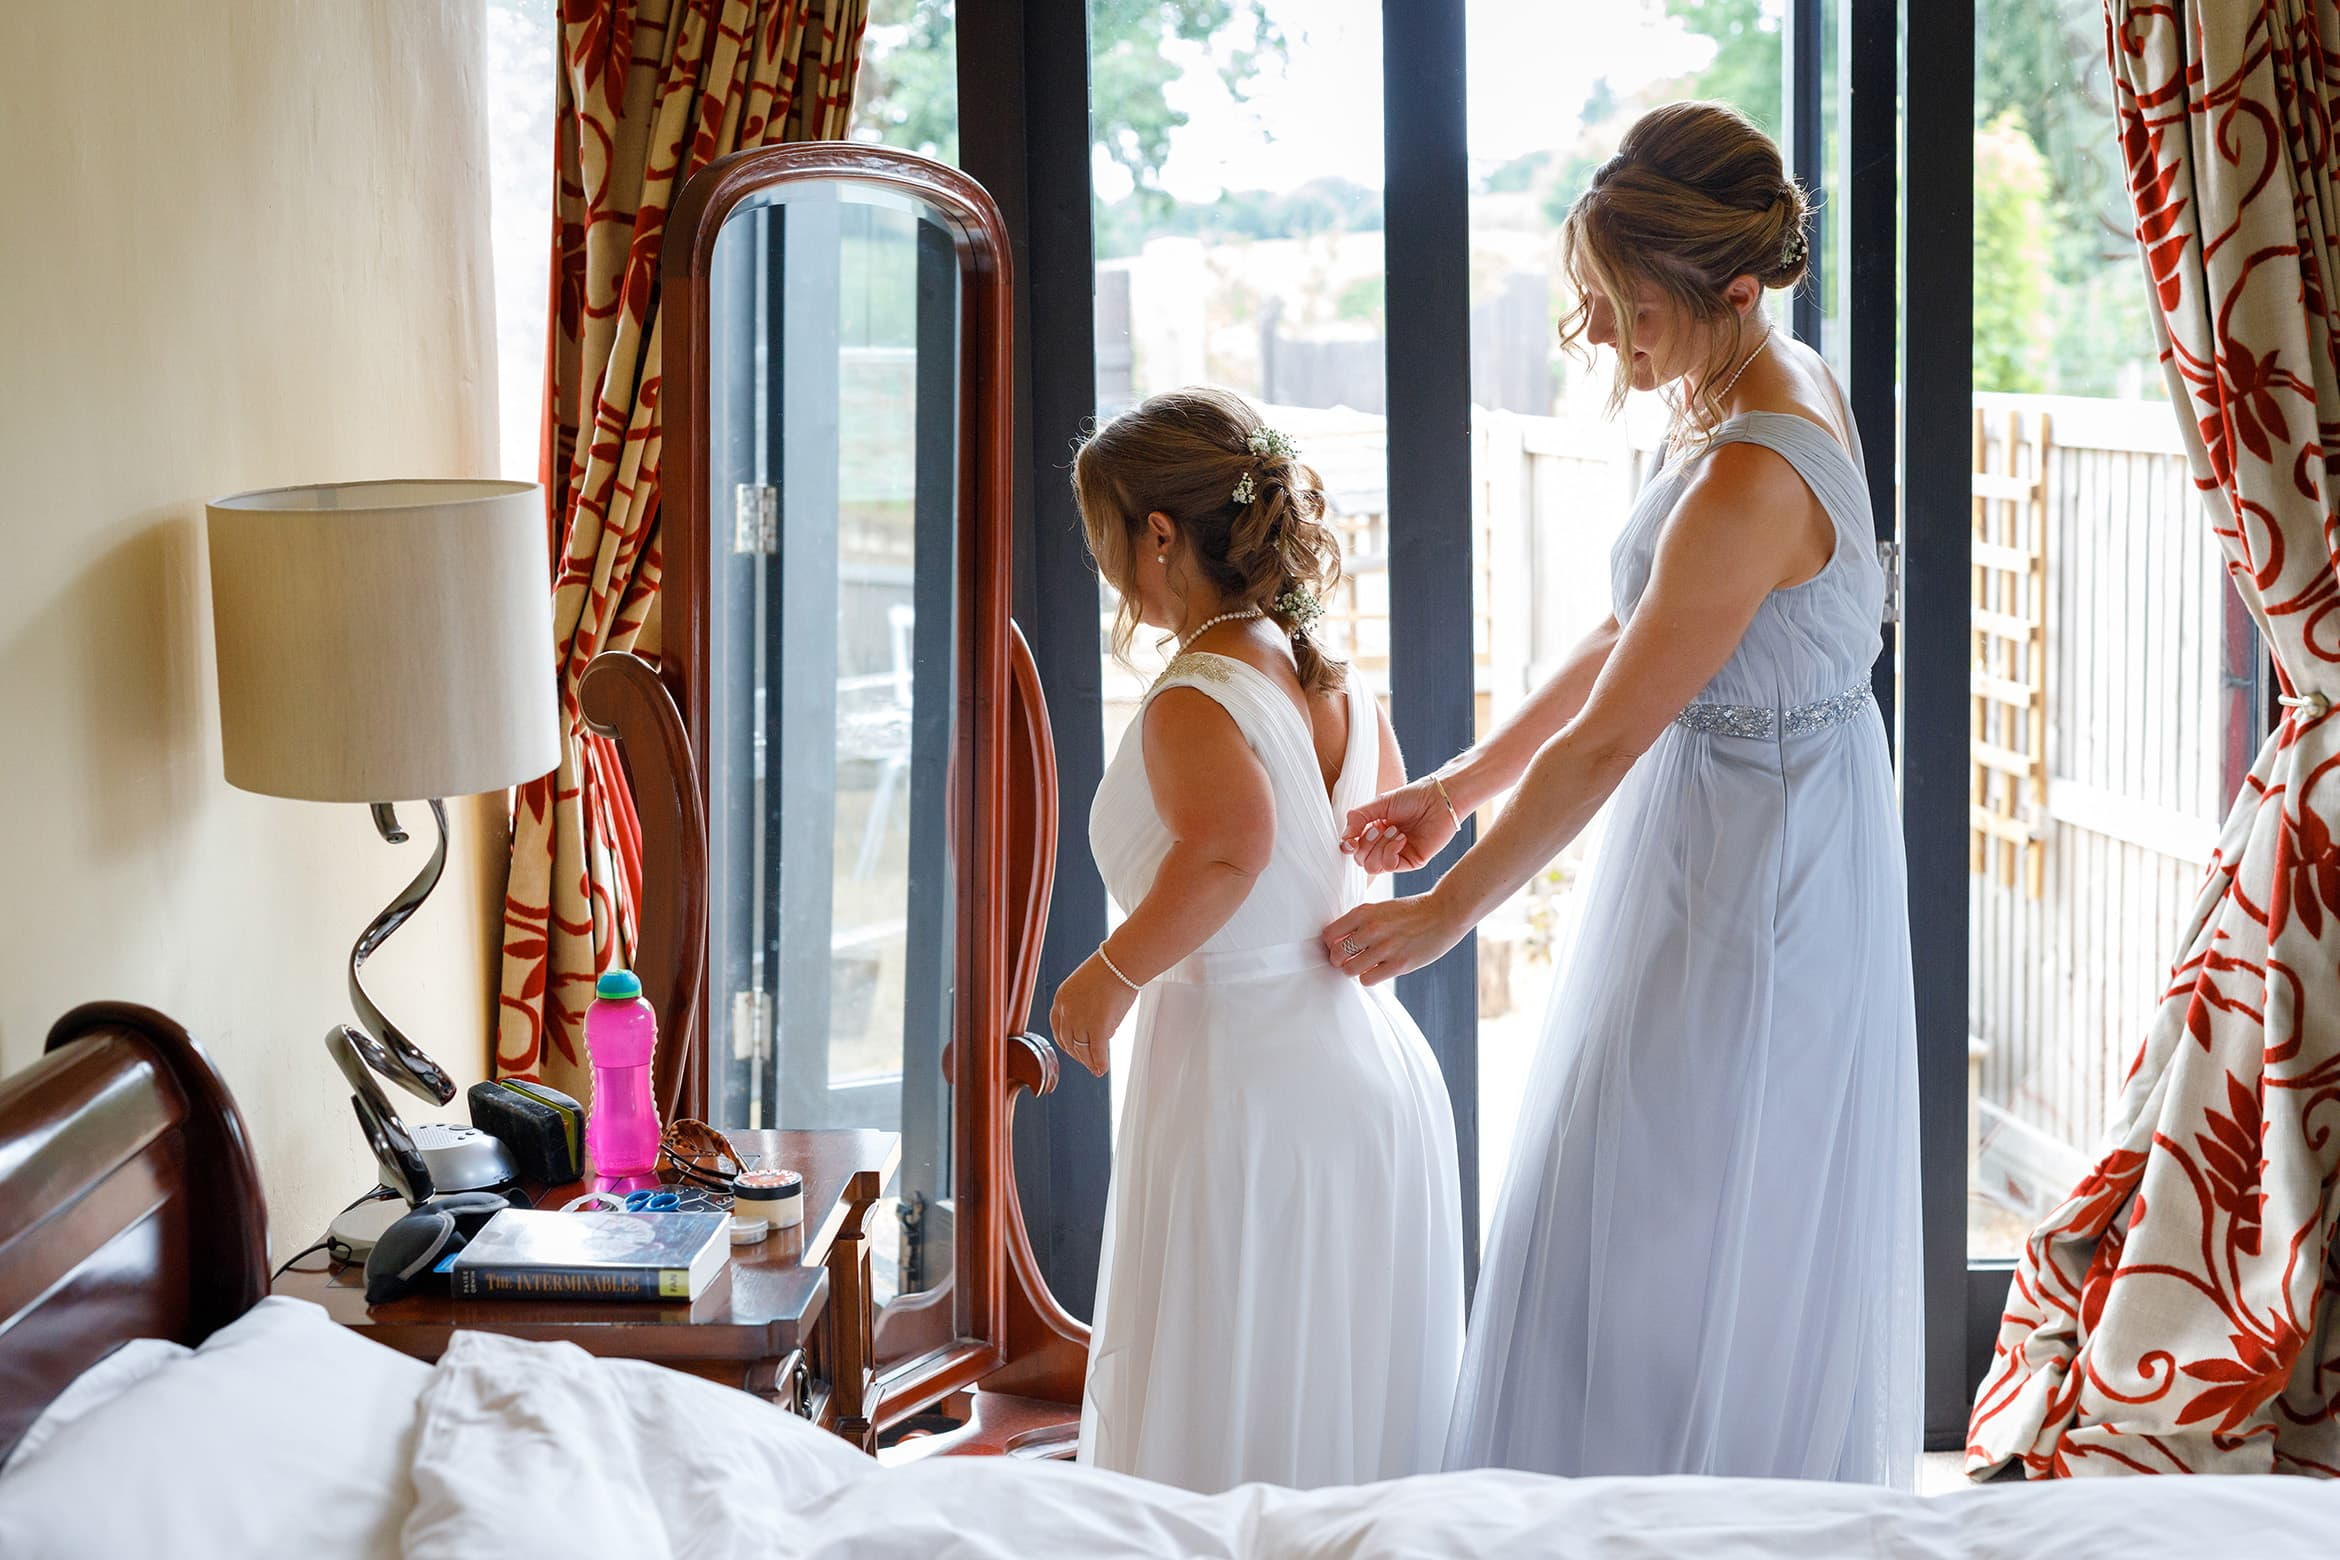 the brides sister helps her into her dress